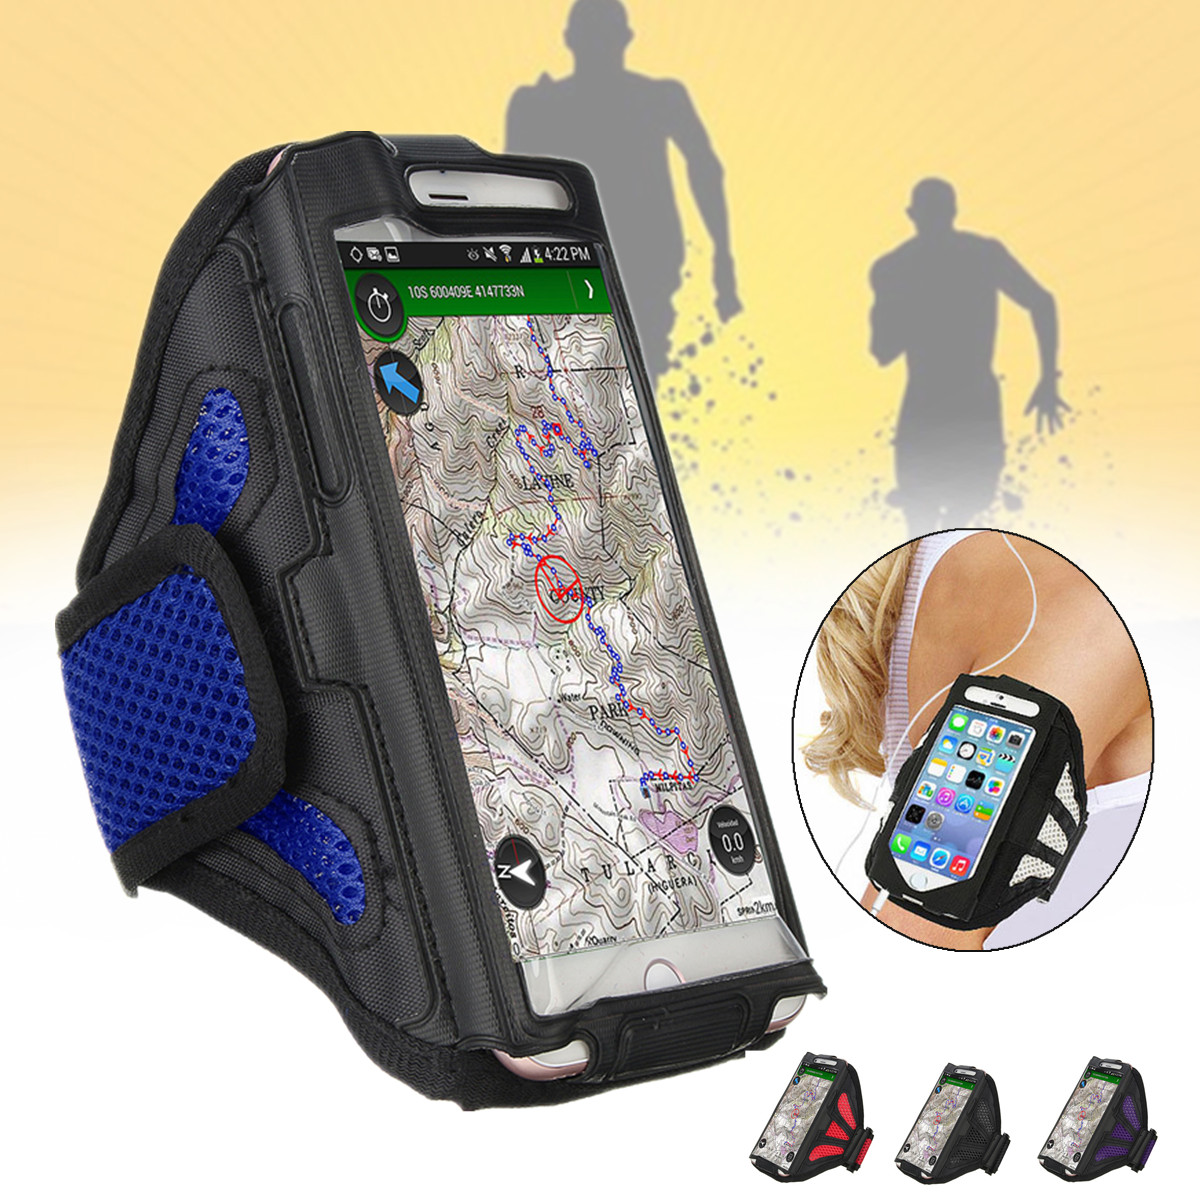 Gym Sports Running Bag Jogging Armband Case Cover Phone Bag for under 5.5 inches Cell Phone